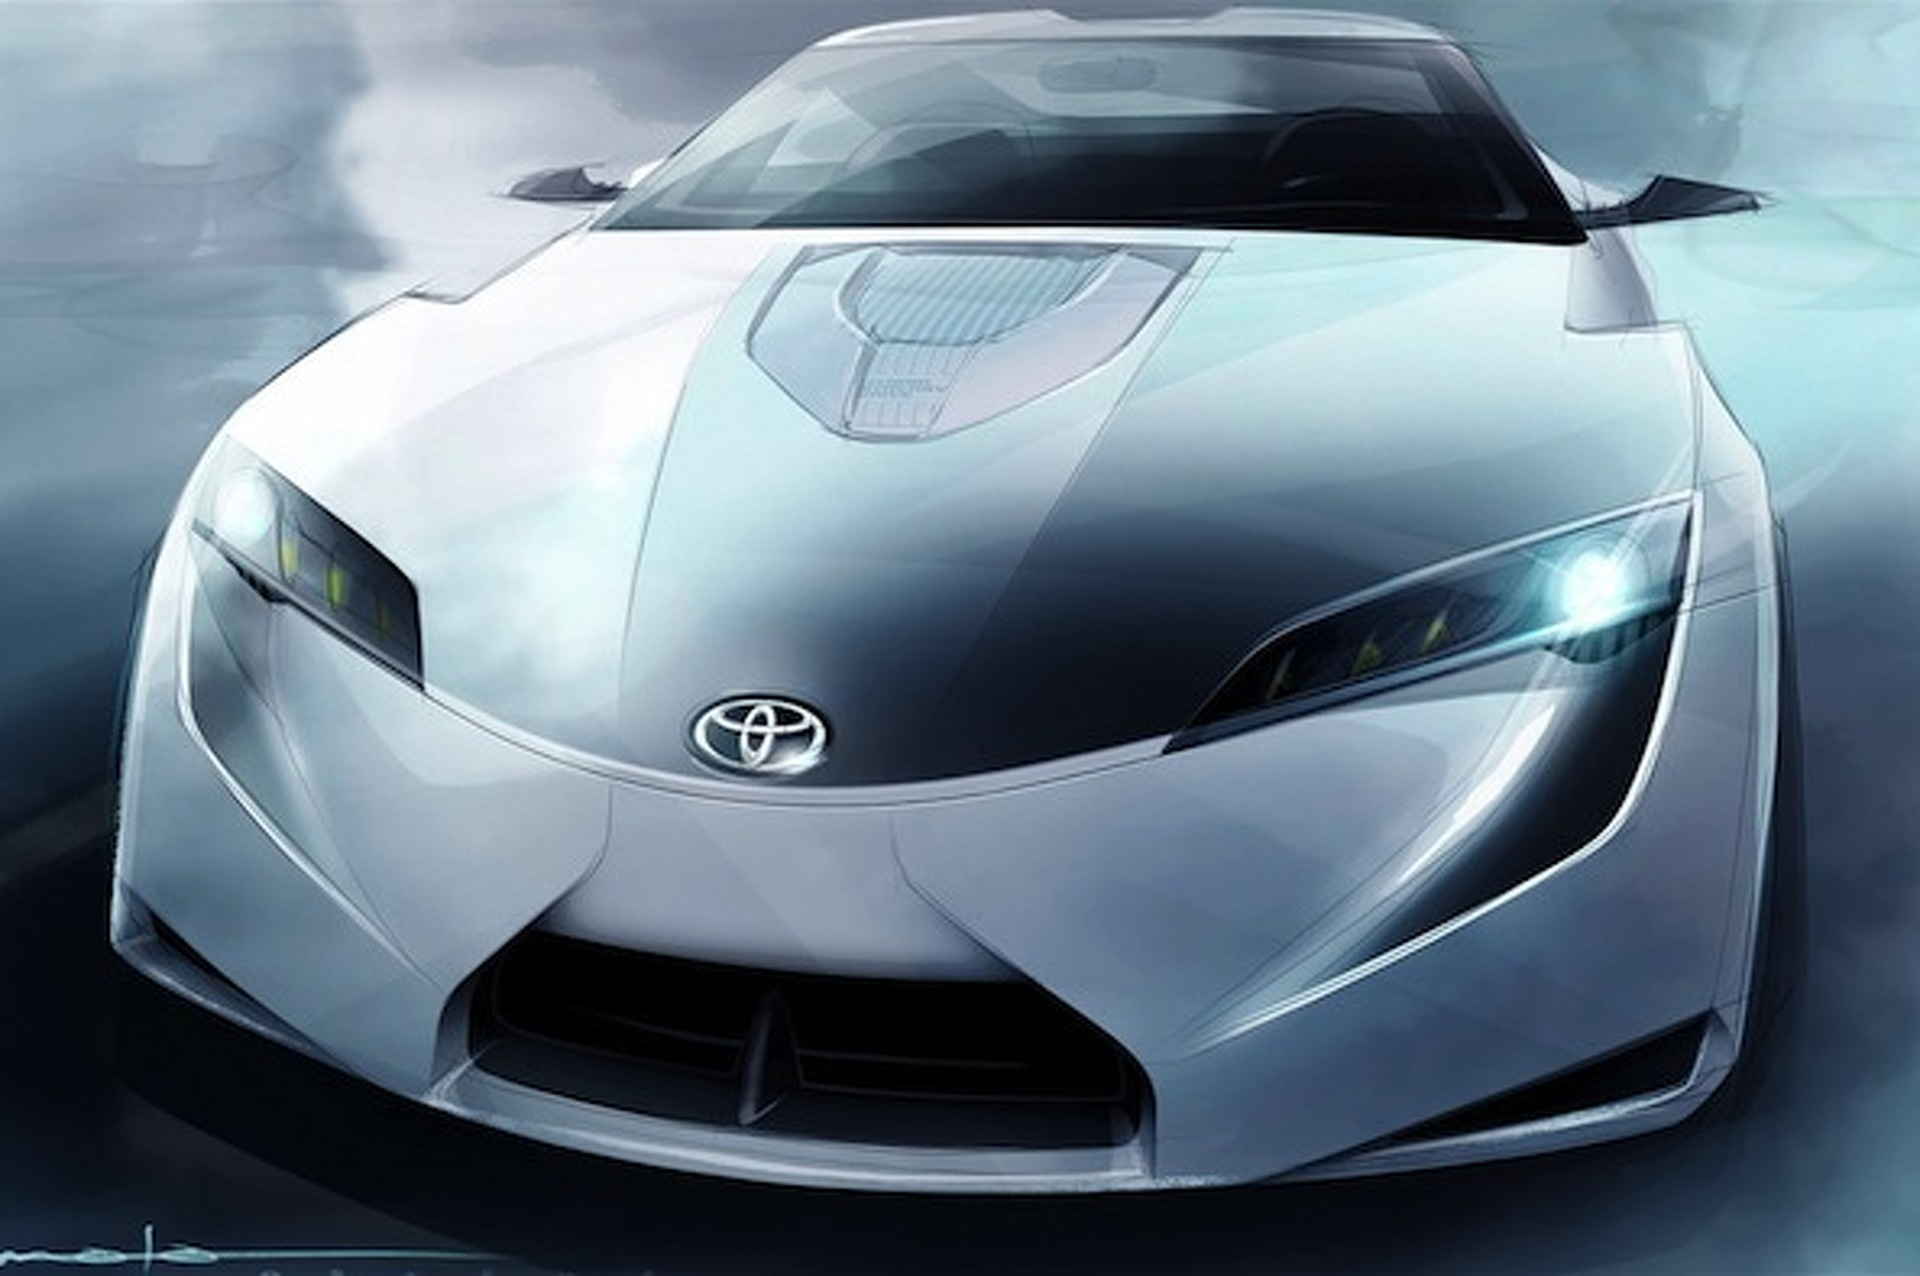 Supra Successor to Remain Rear-Drive, Could Lose Supra Nameplate